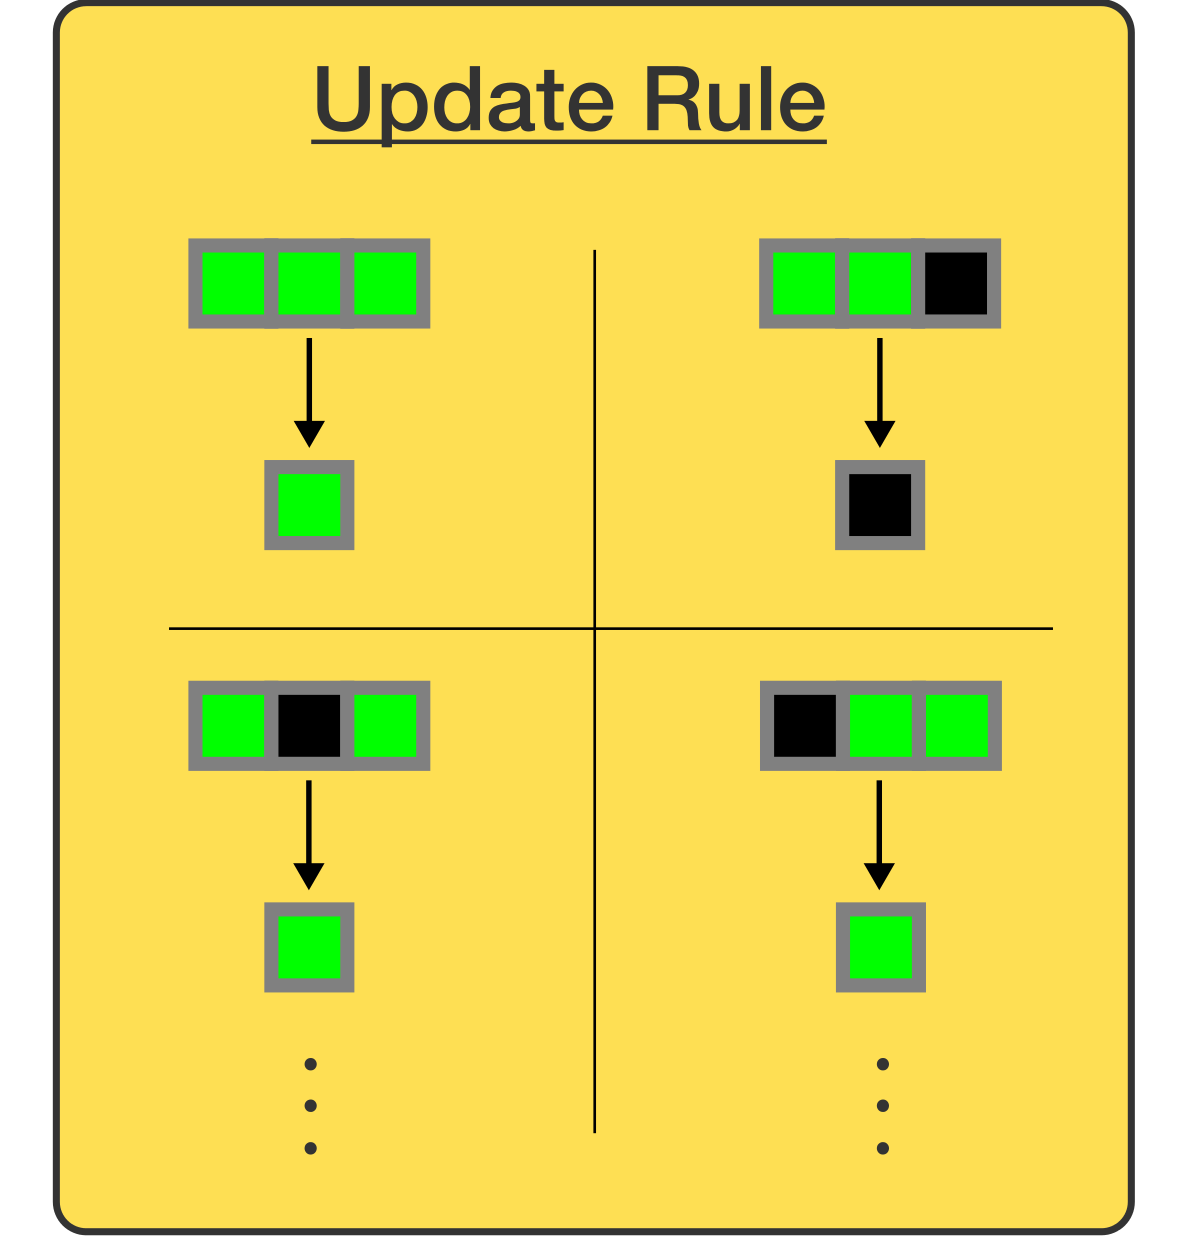 Each time step, a square updates its color using the Update Rule according to the current state of its <strong>trio</strong>.